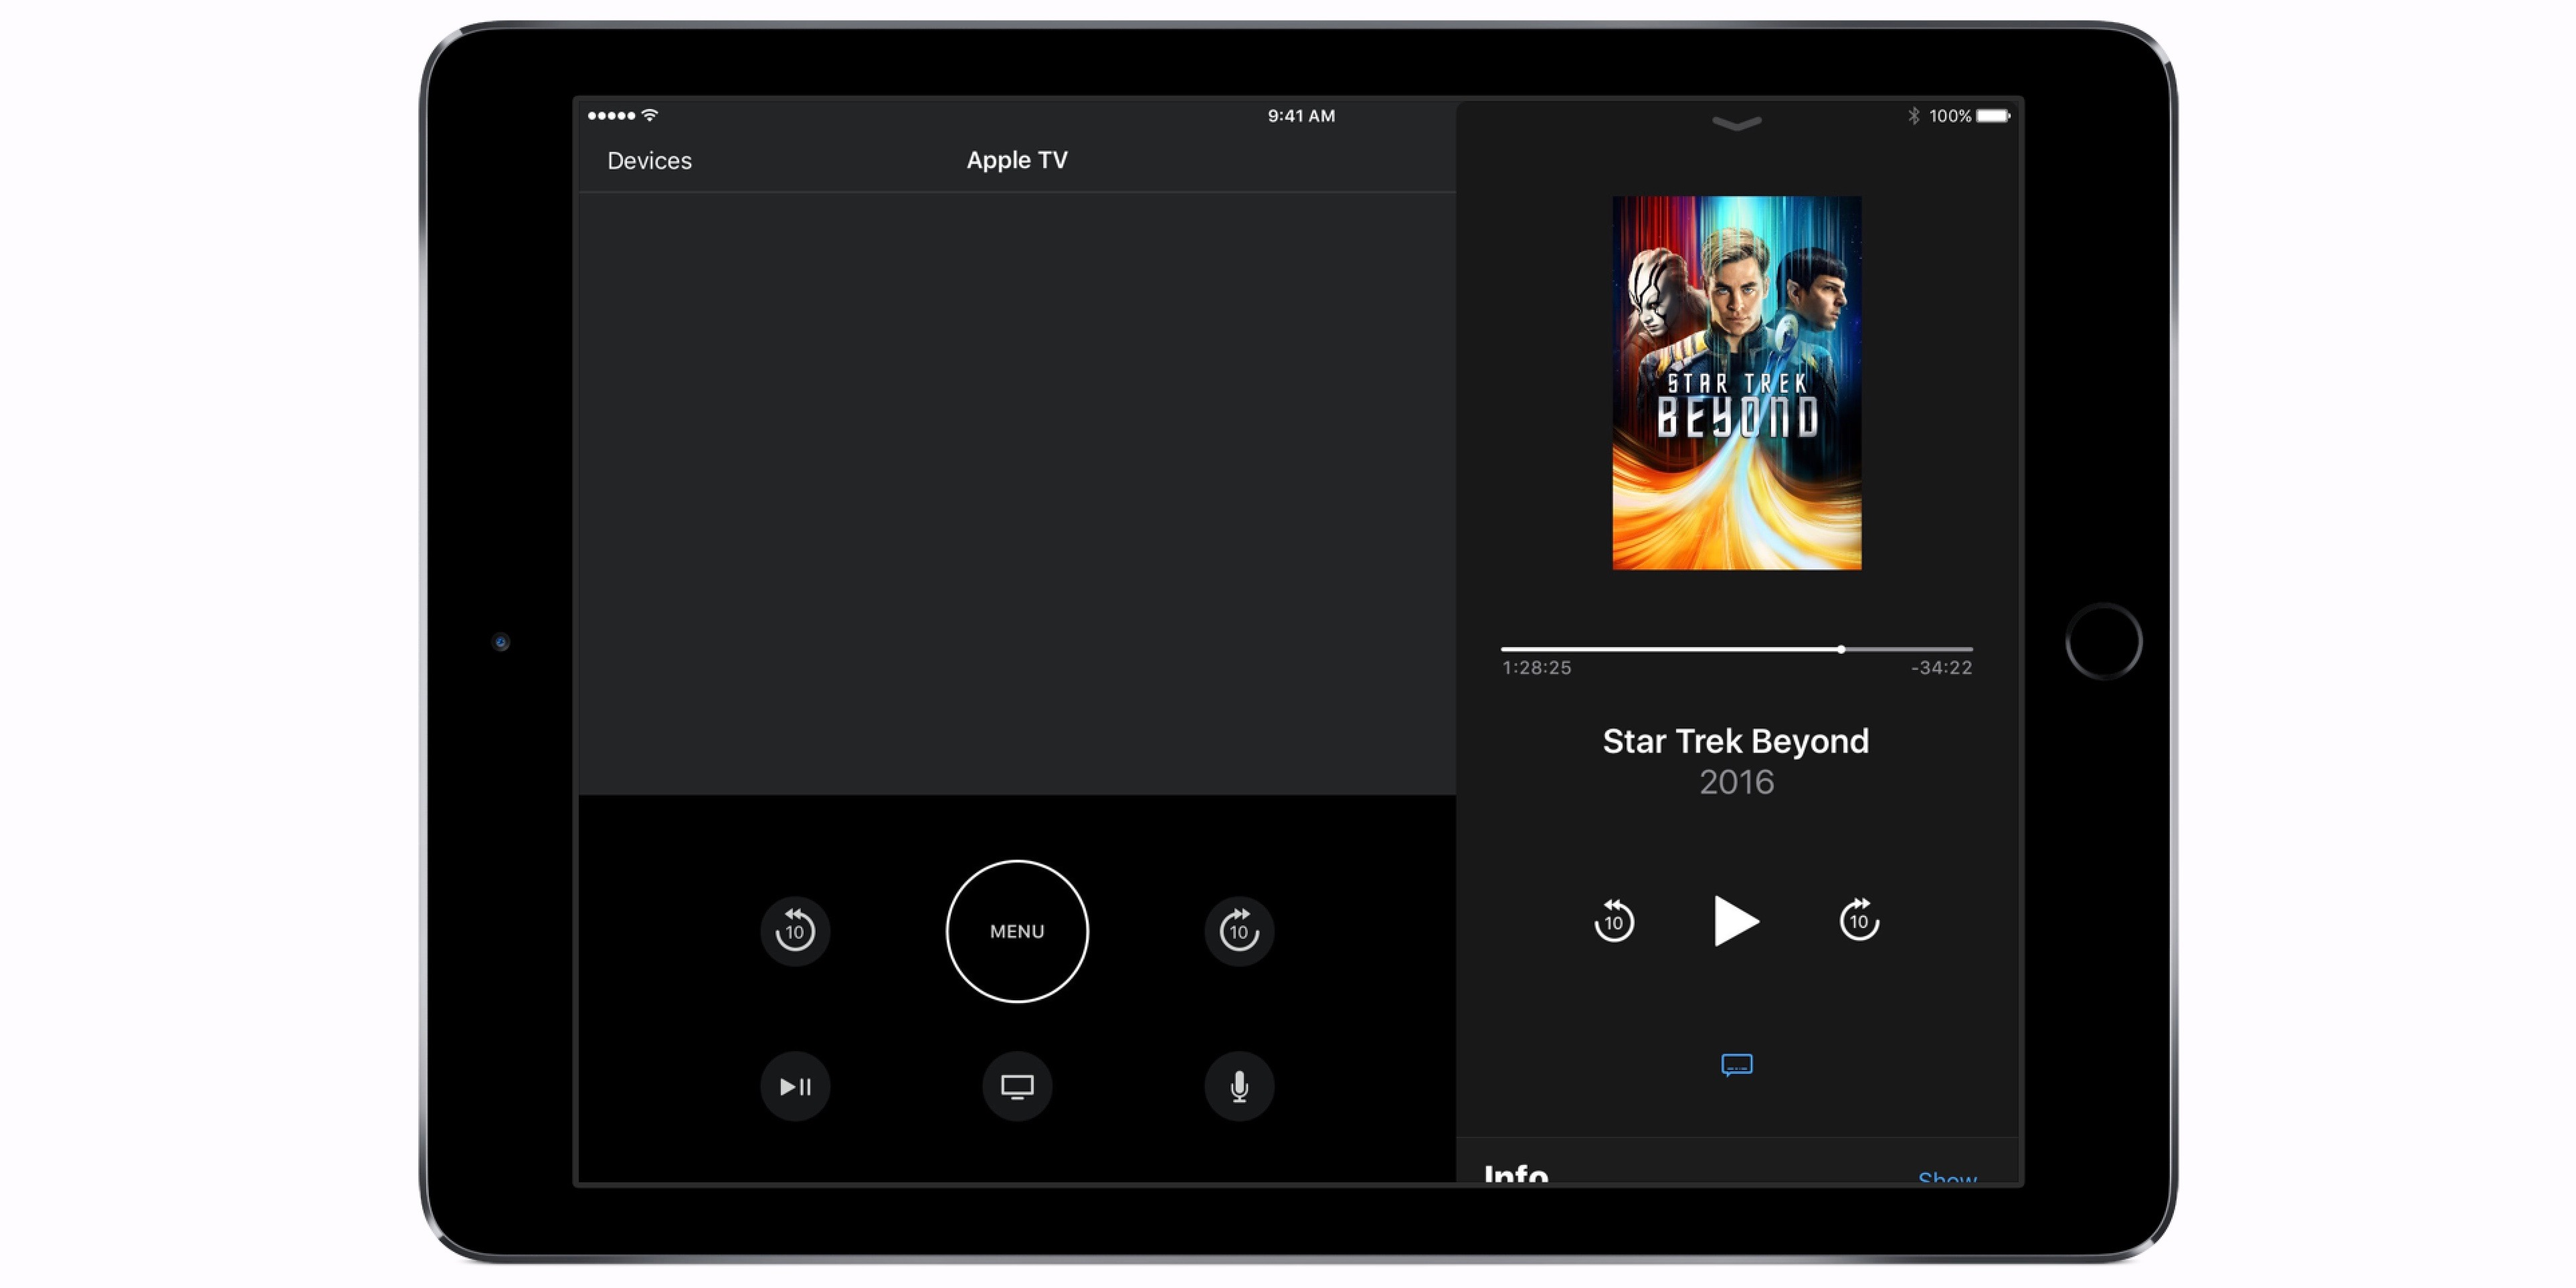 apple tv remote and support apps updated for larger screens applecare and password features